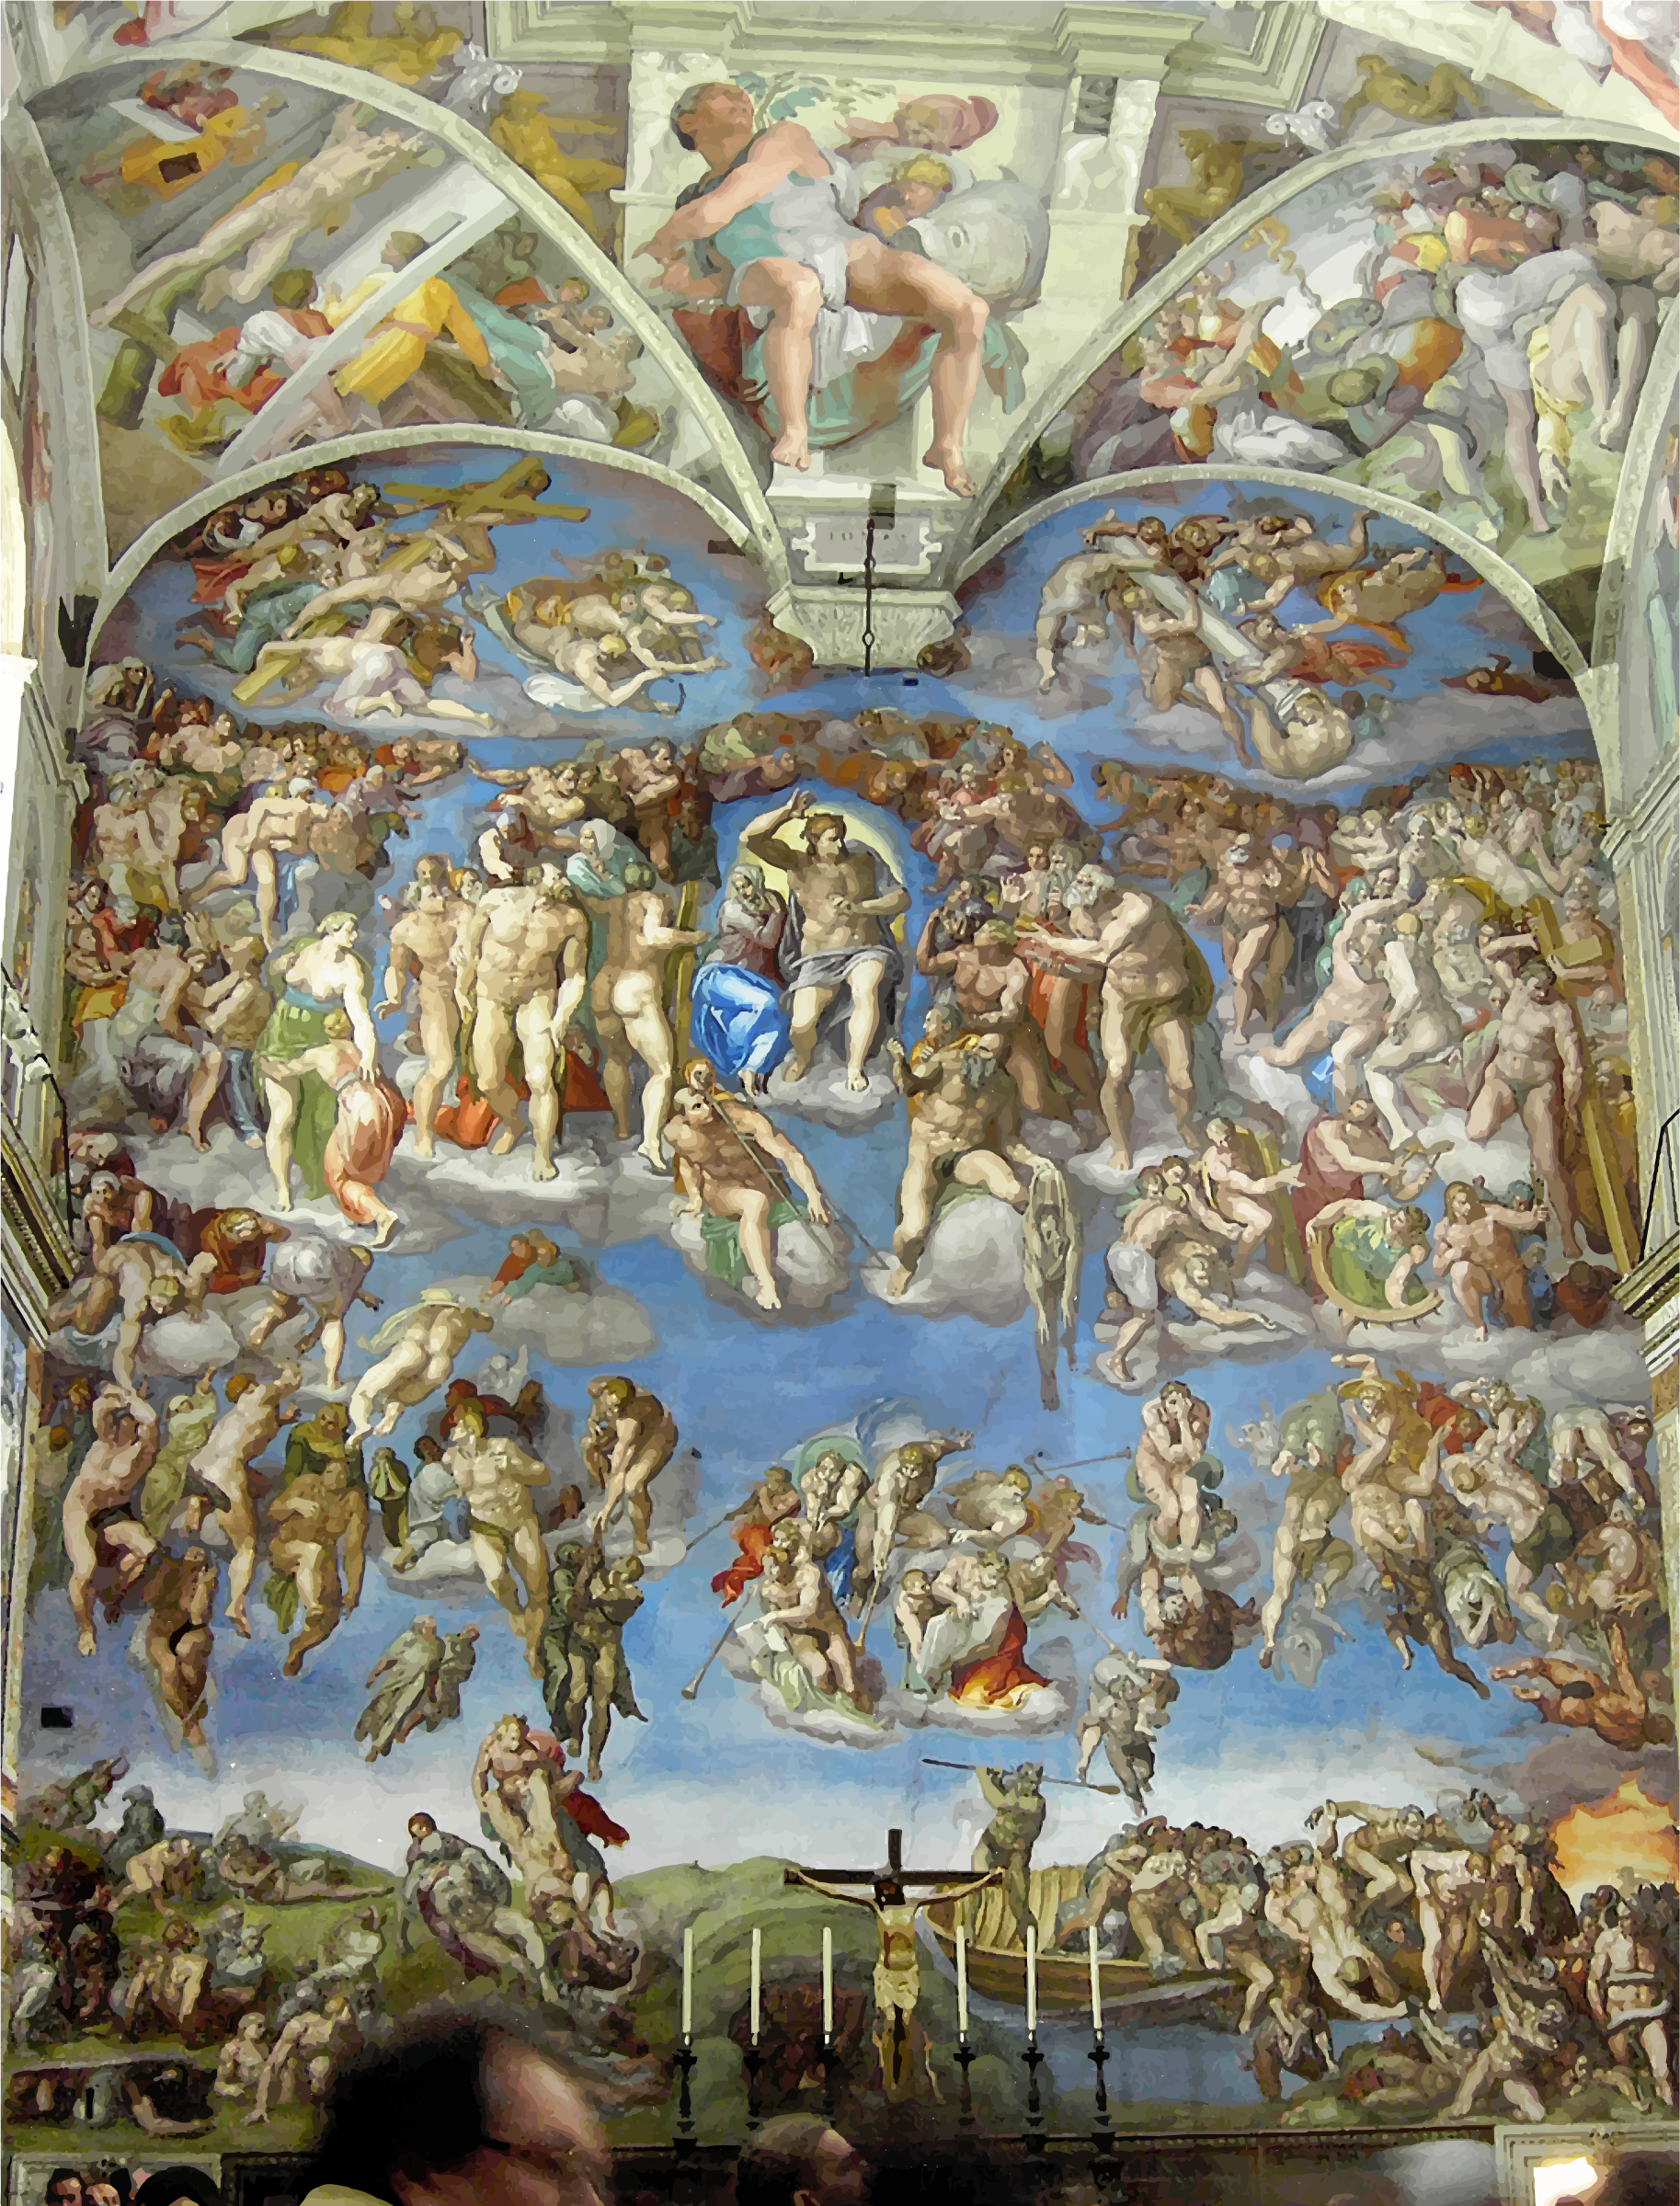 Michelangelo's The Last Judgement by GDJ